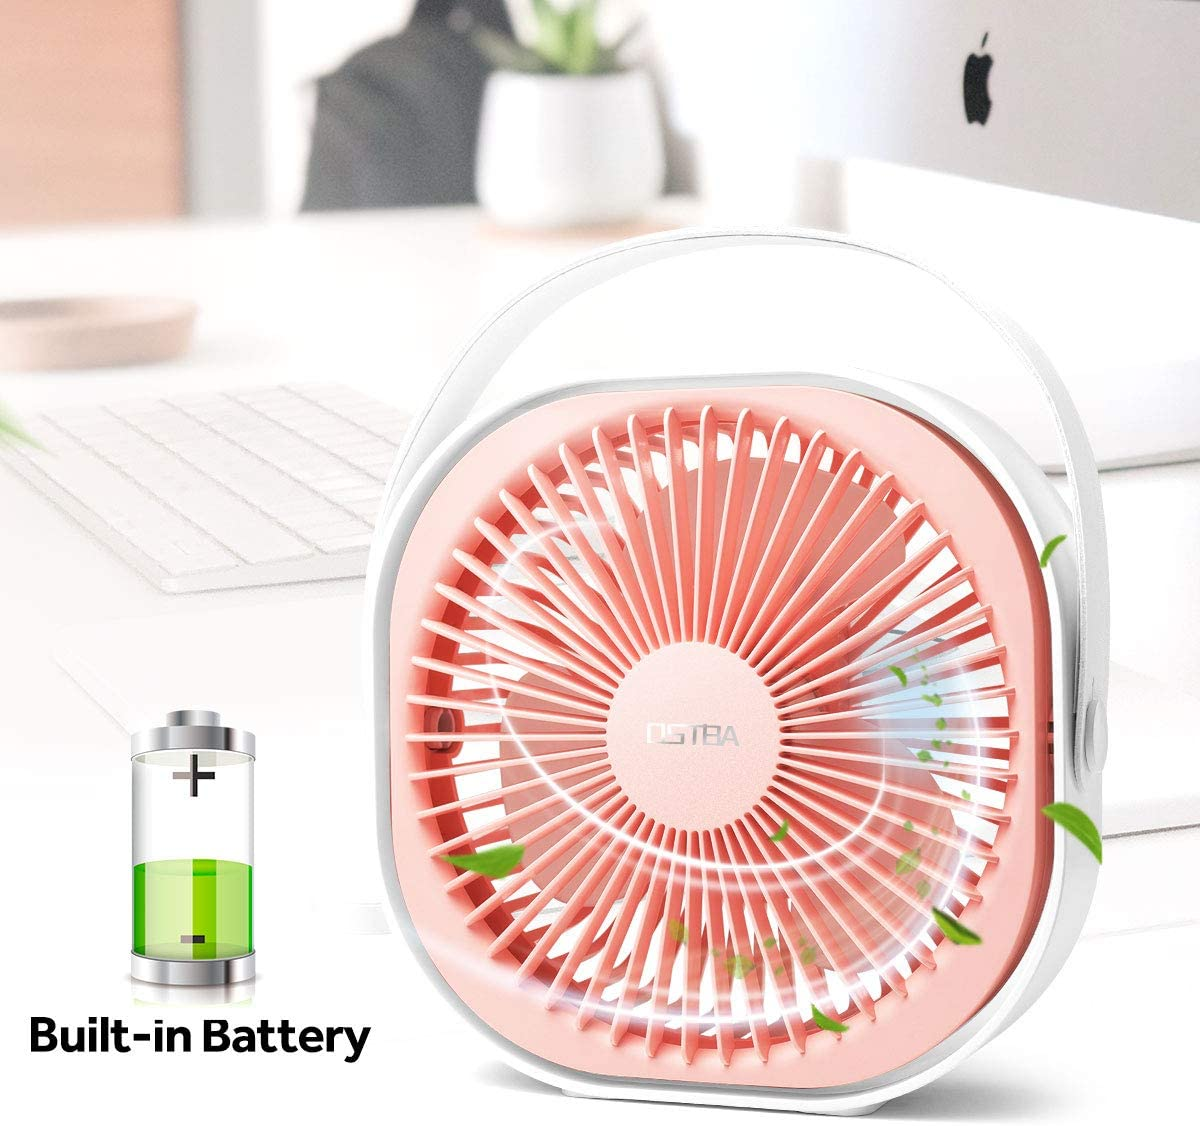 Desk Fan 6 Inch Rechargeable Battery Powered Mini USB Fan Ultra Quiet Table Fan with 3 Speeds, Portable USB Personal Fan for Office, Home, Car, Travel, 2000mAh, Includes a Handle Pink